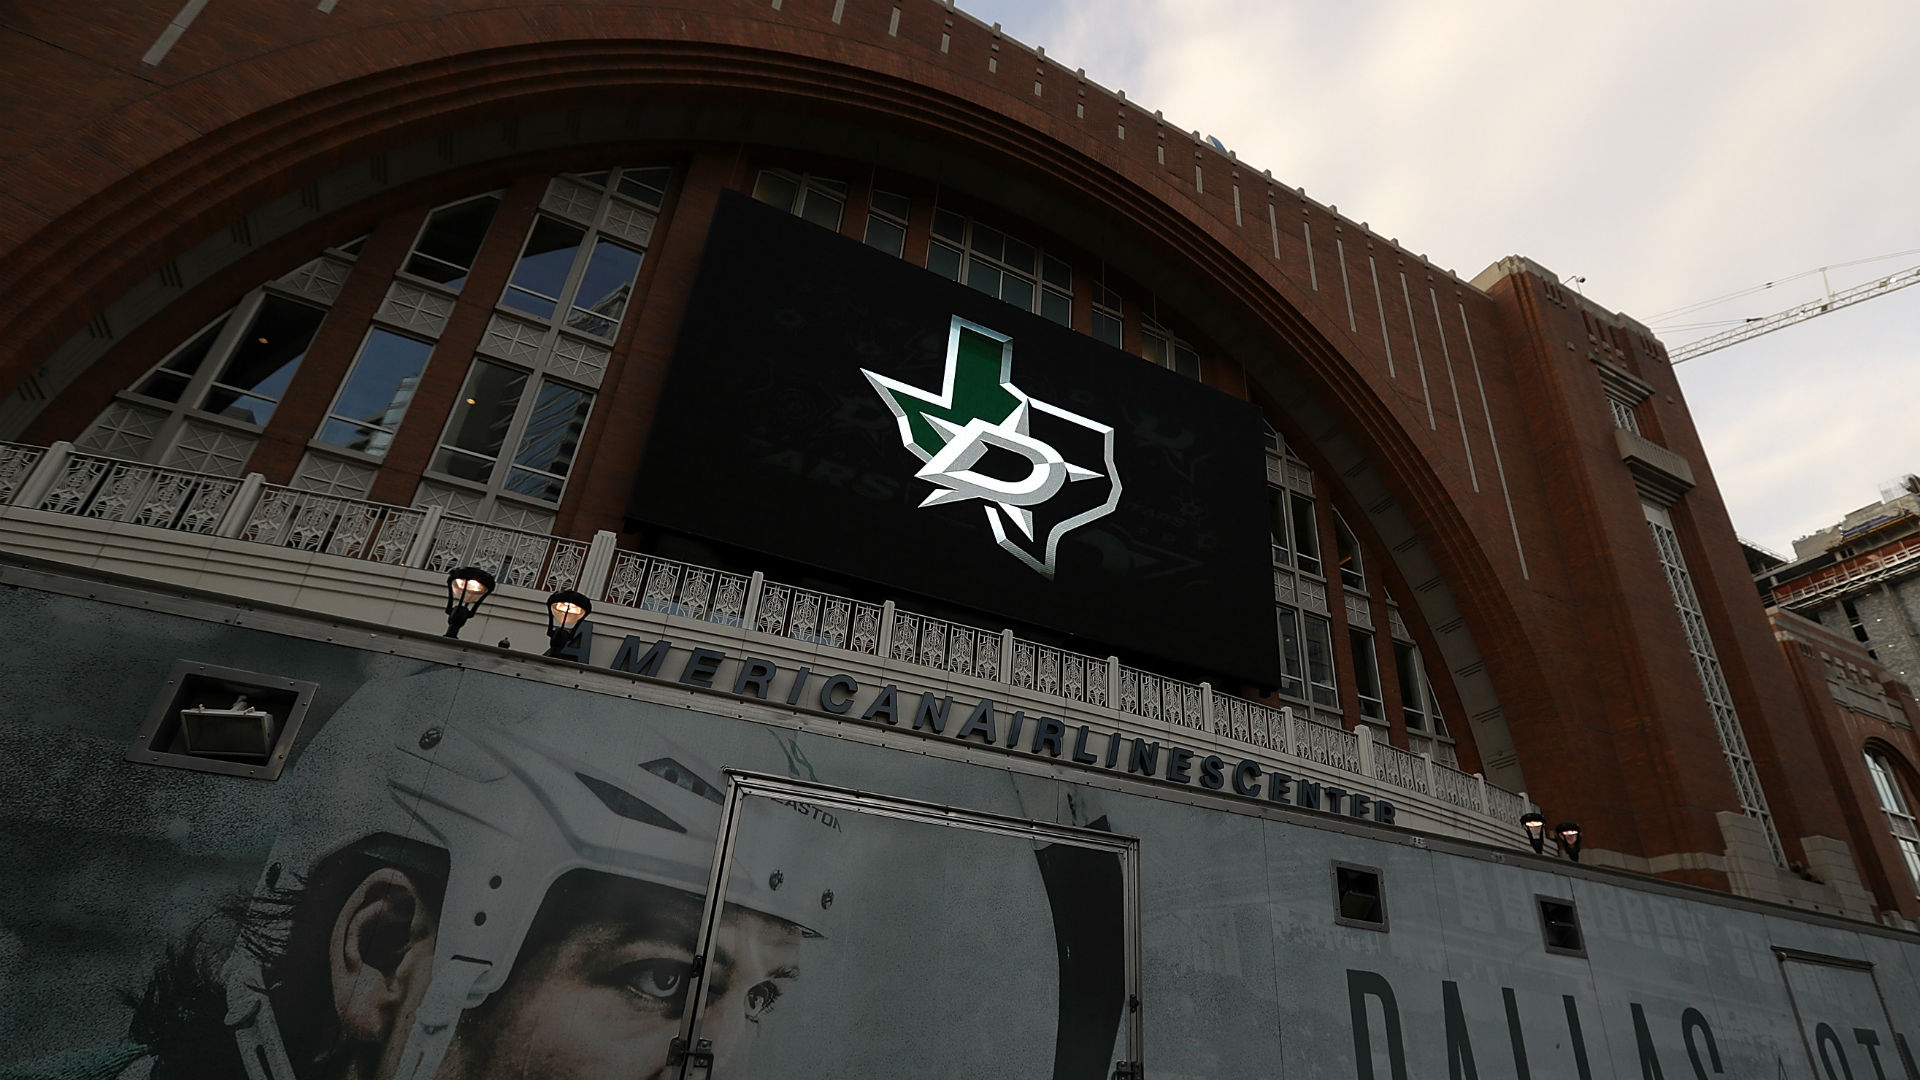 Dallas Stars 1st Pro Team to Publicly Oppose Texas' 'Bathroom Bill'